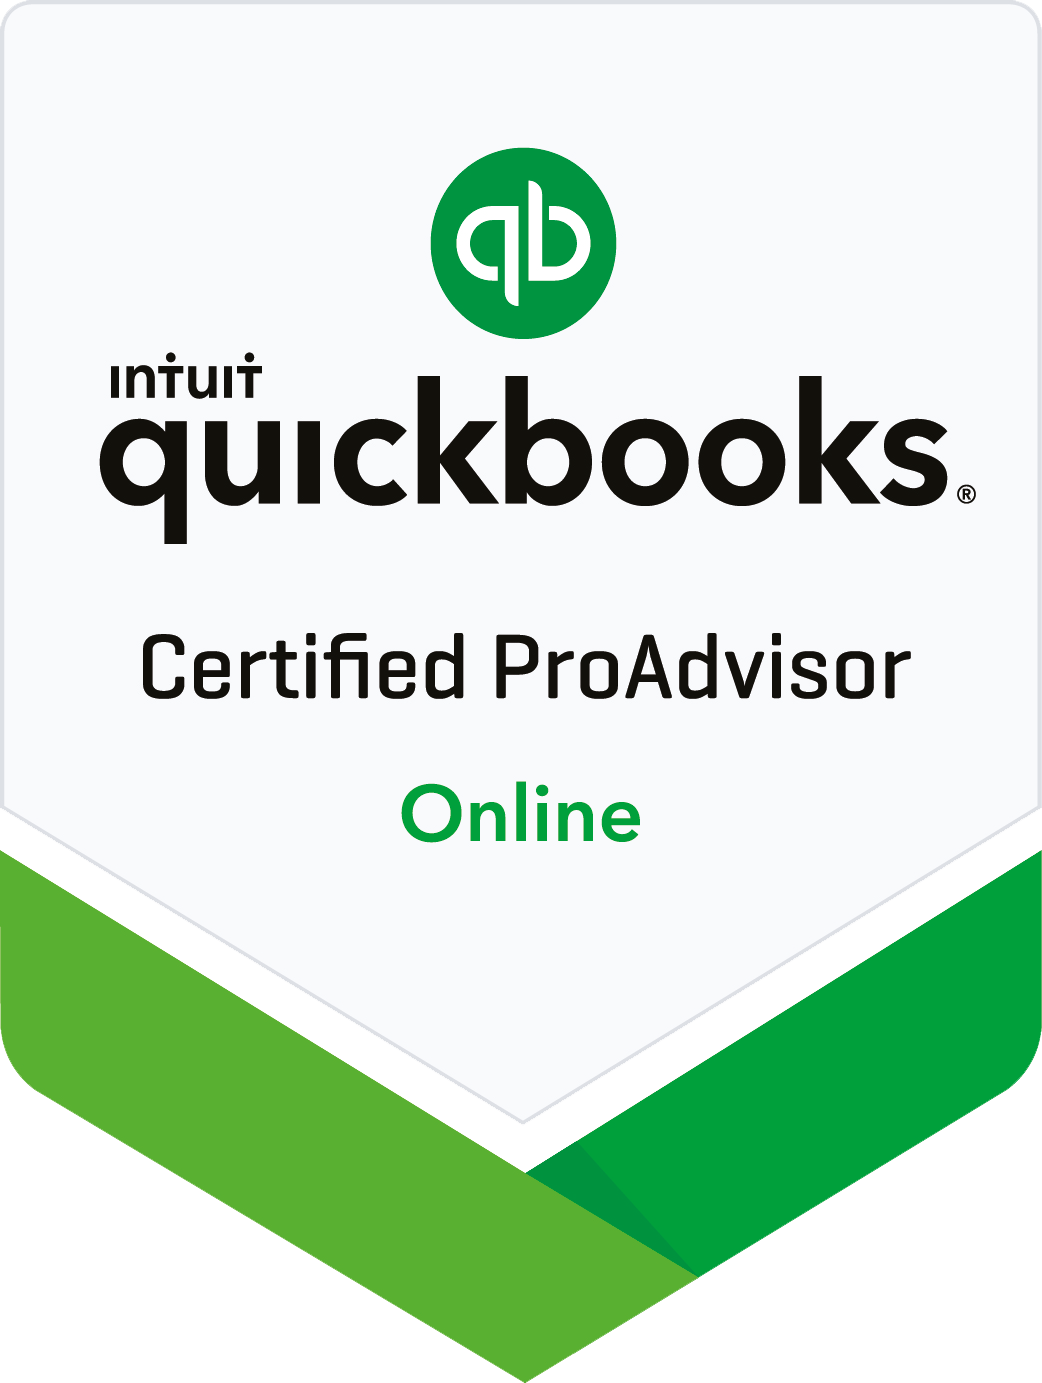 QuickBooks Core Certification